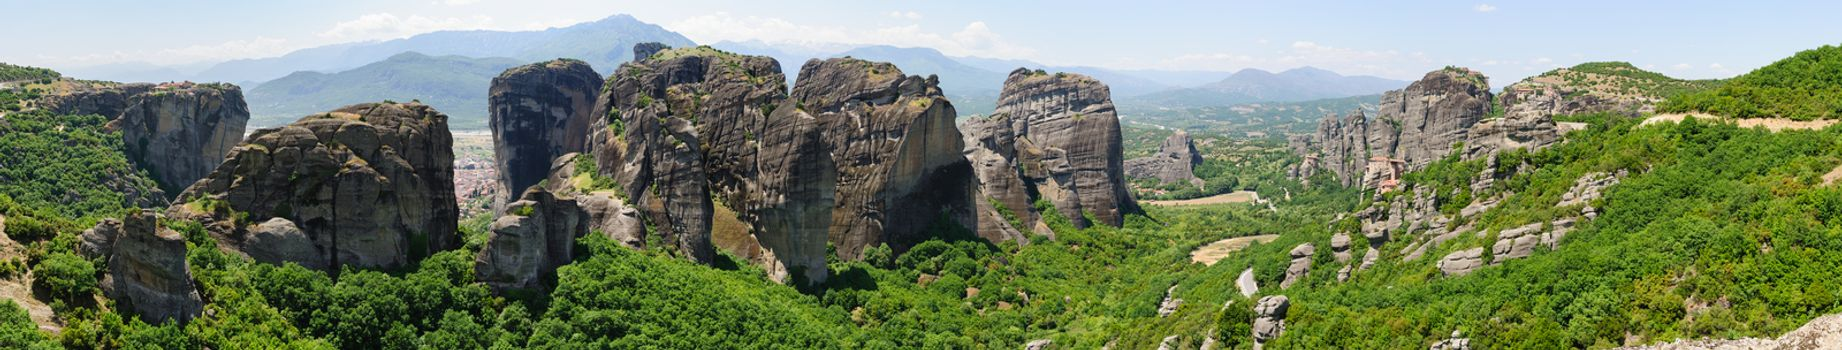 High resolution Panorama of Meteora, Greece, with Orthodox Christian Monasteries and view to Kalabaka city